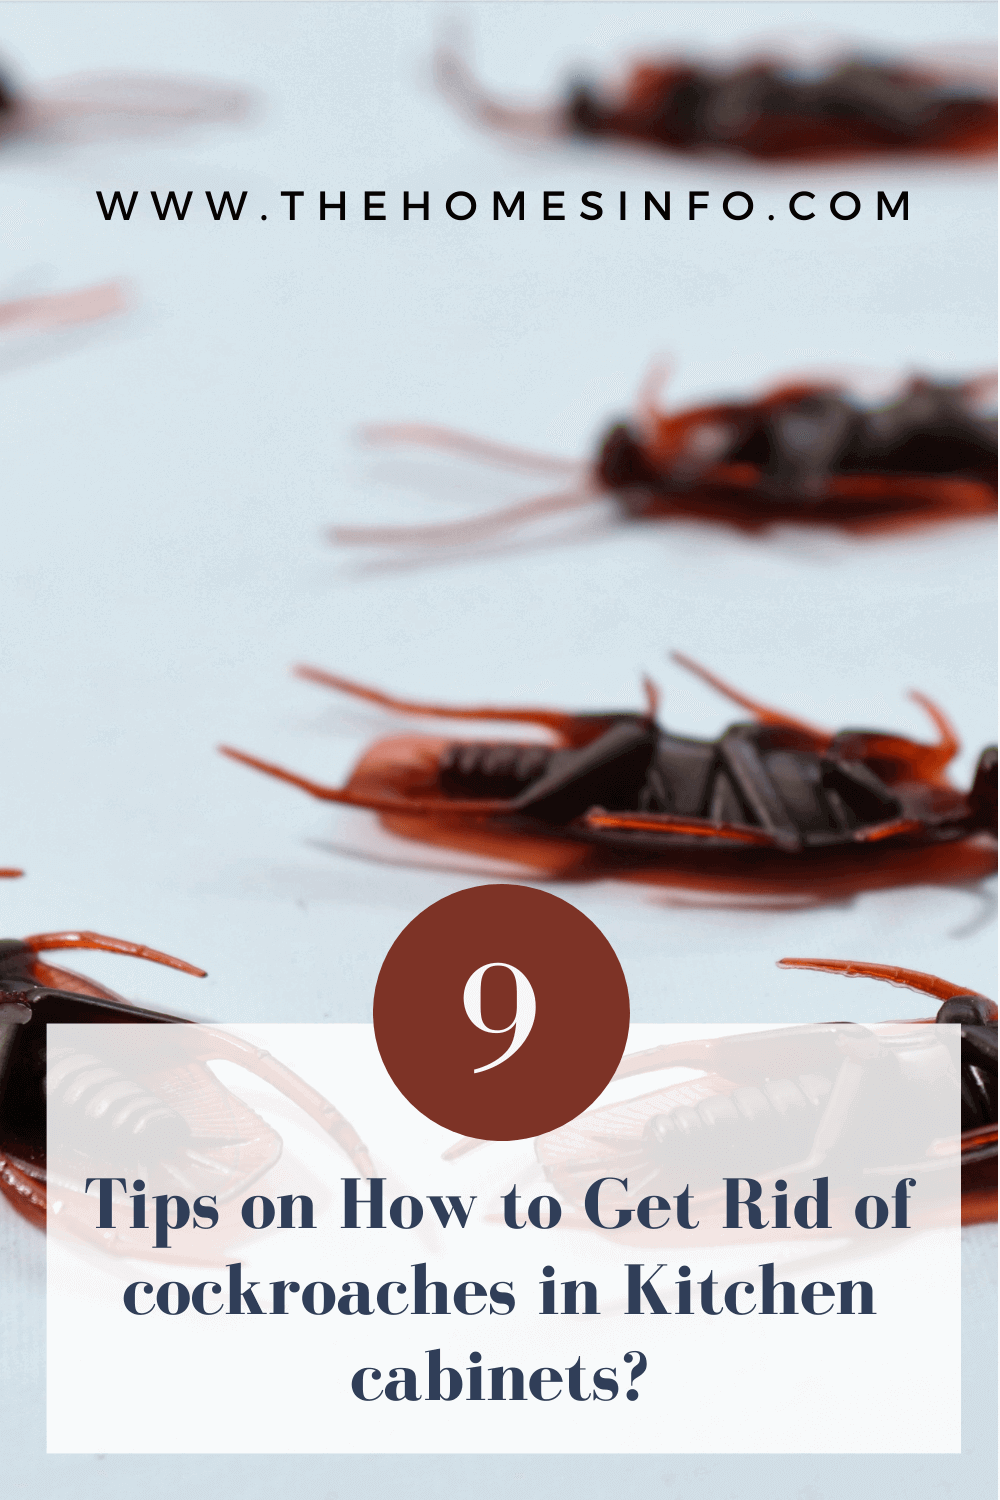 how-to-get-rid-of-cockroaches-in-kitchen-cabinets-thehomesinfo